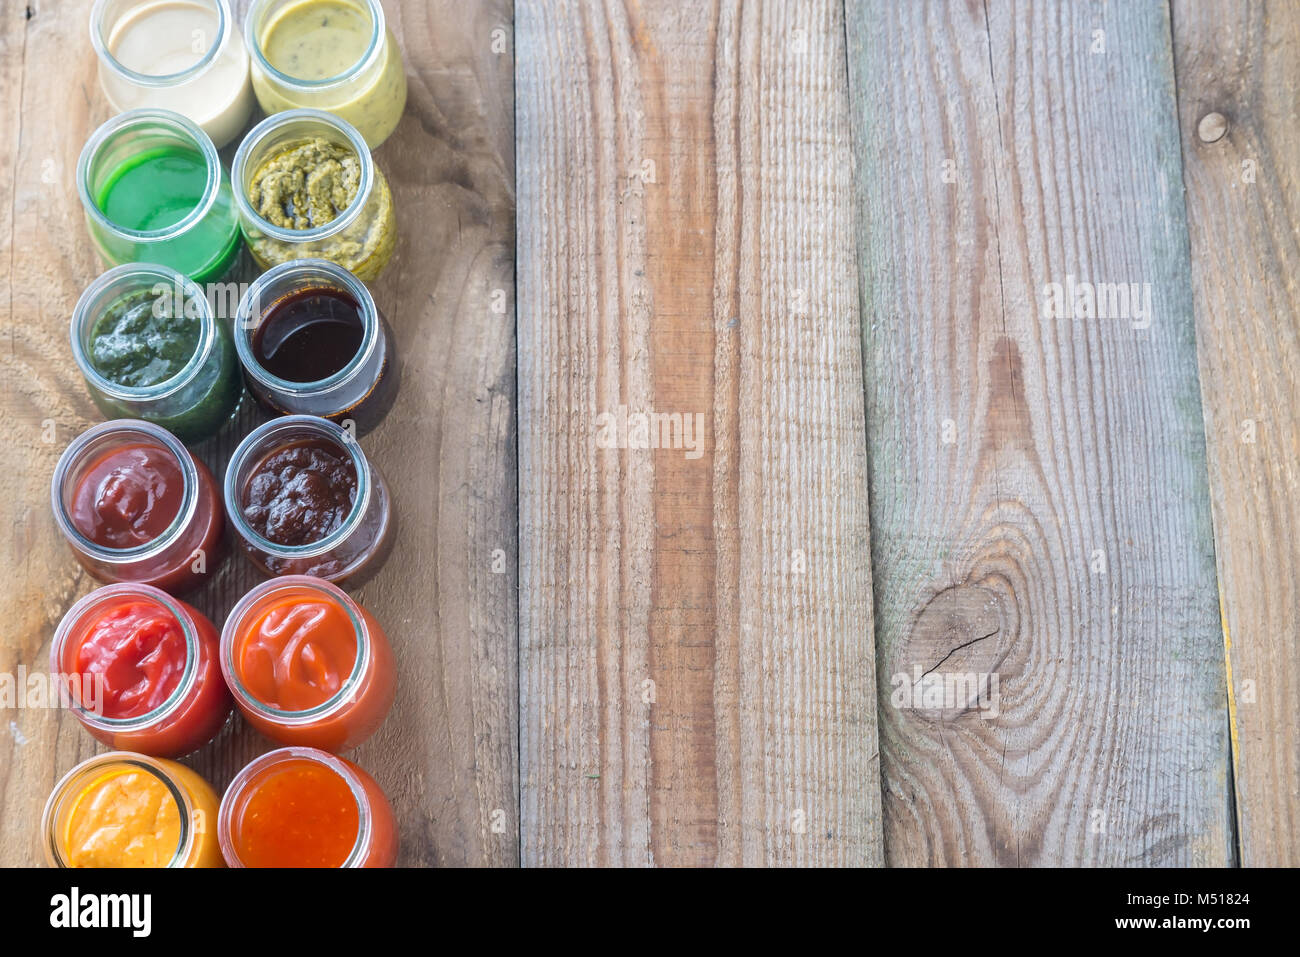 Assortment of sauces in the glass jars - Stock Image